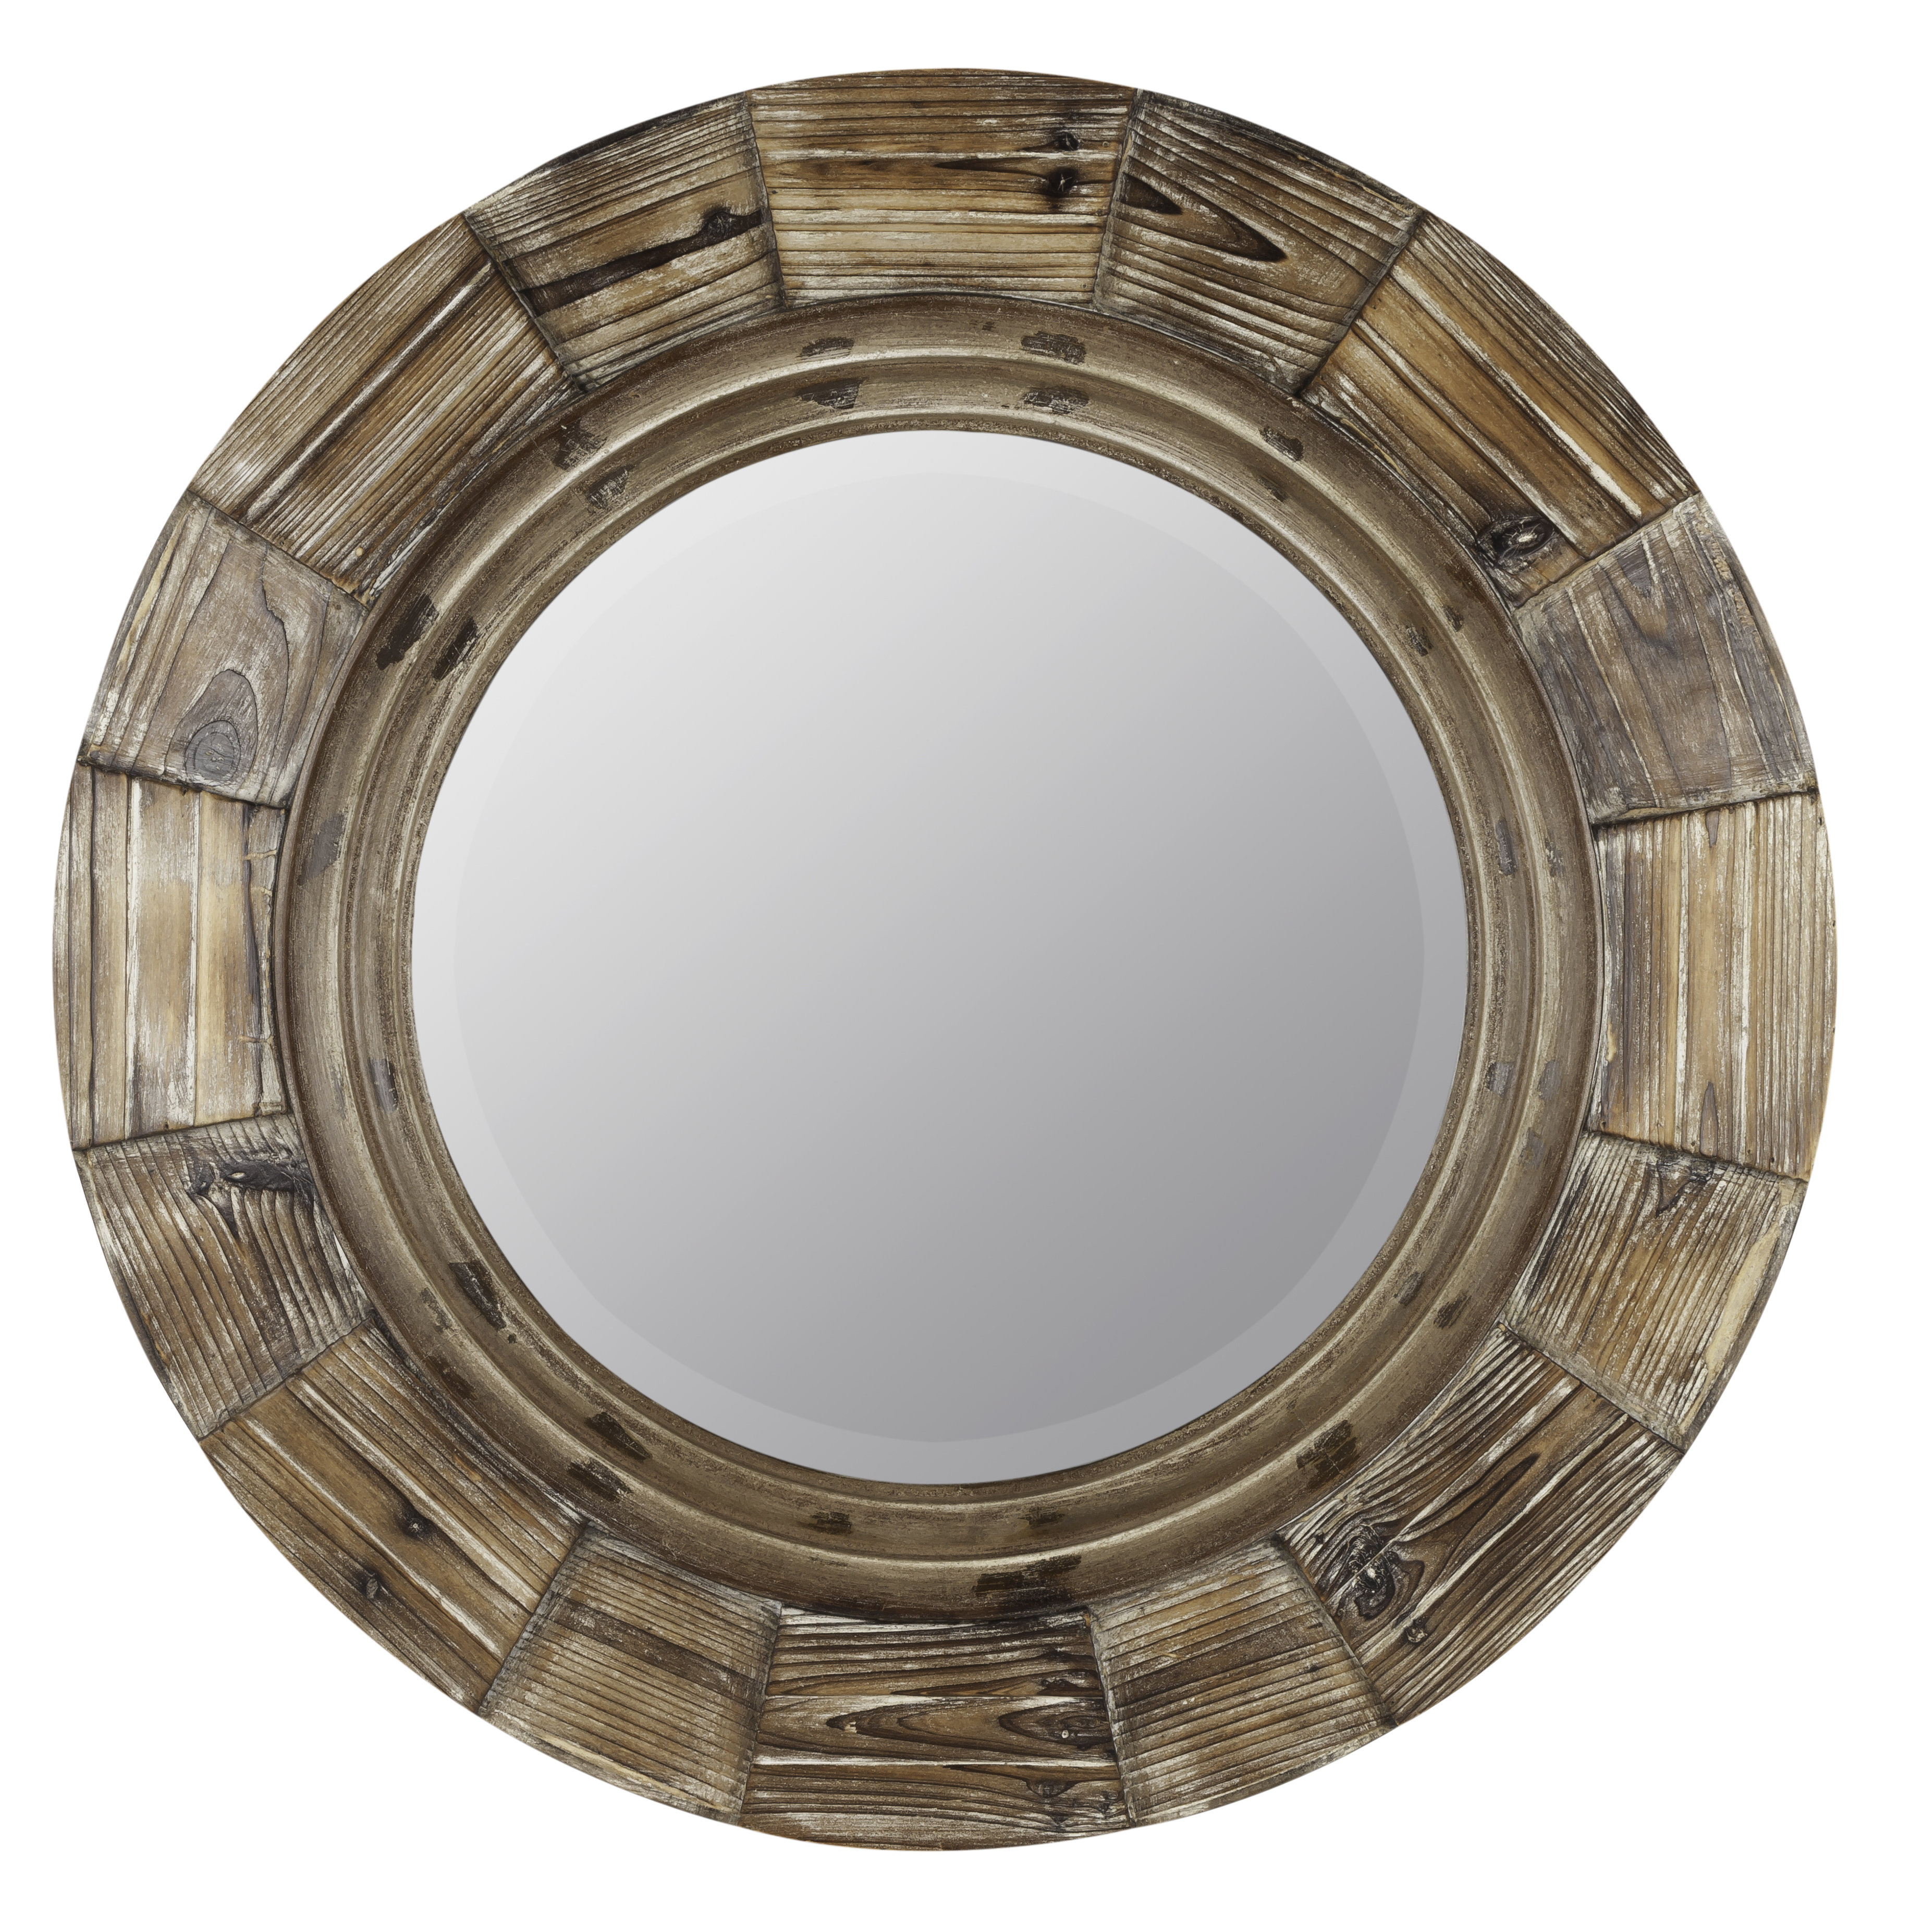 Farmhouse & Rustic Cooper Classics Wall & Accent Mirrors For Reba Accent Wall Mirrors (View 15 of 20)